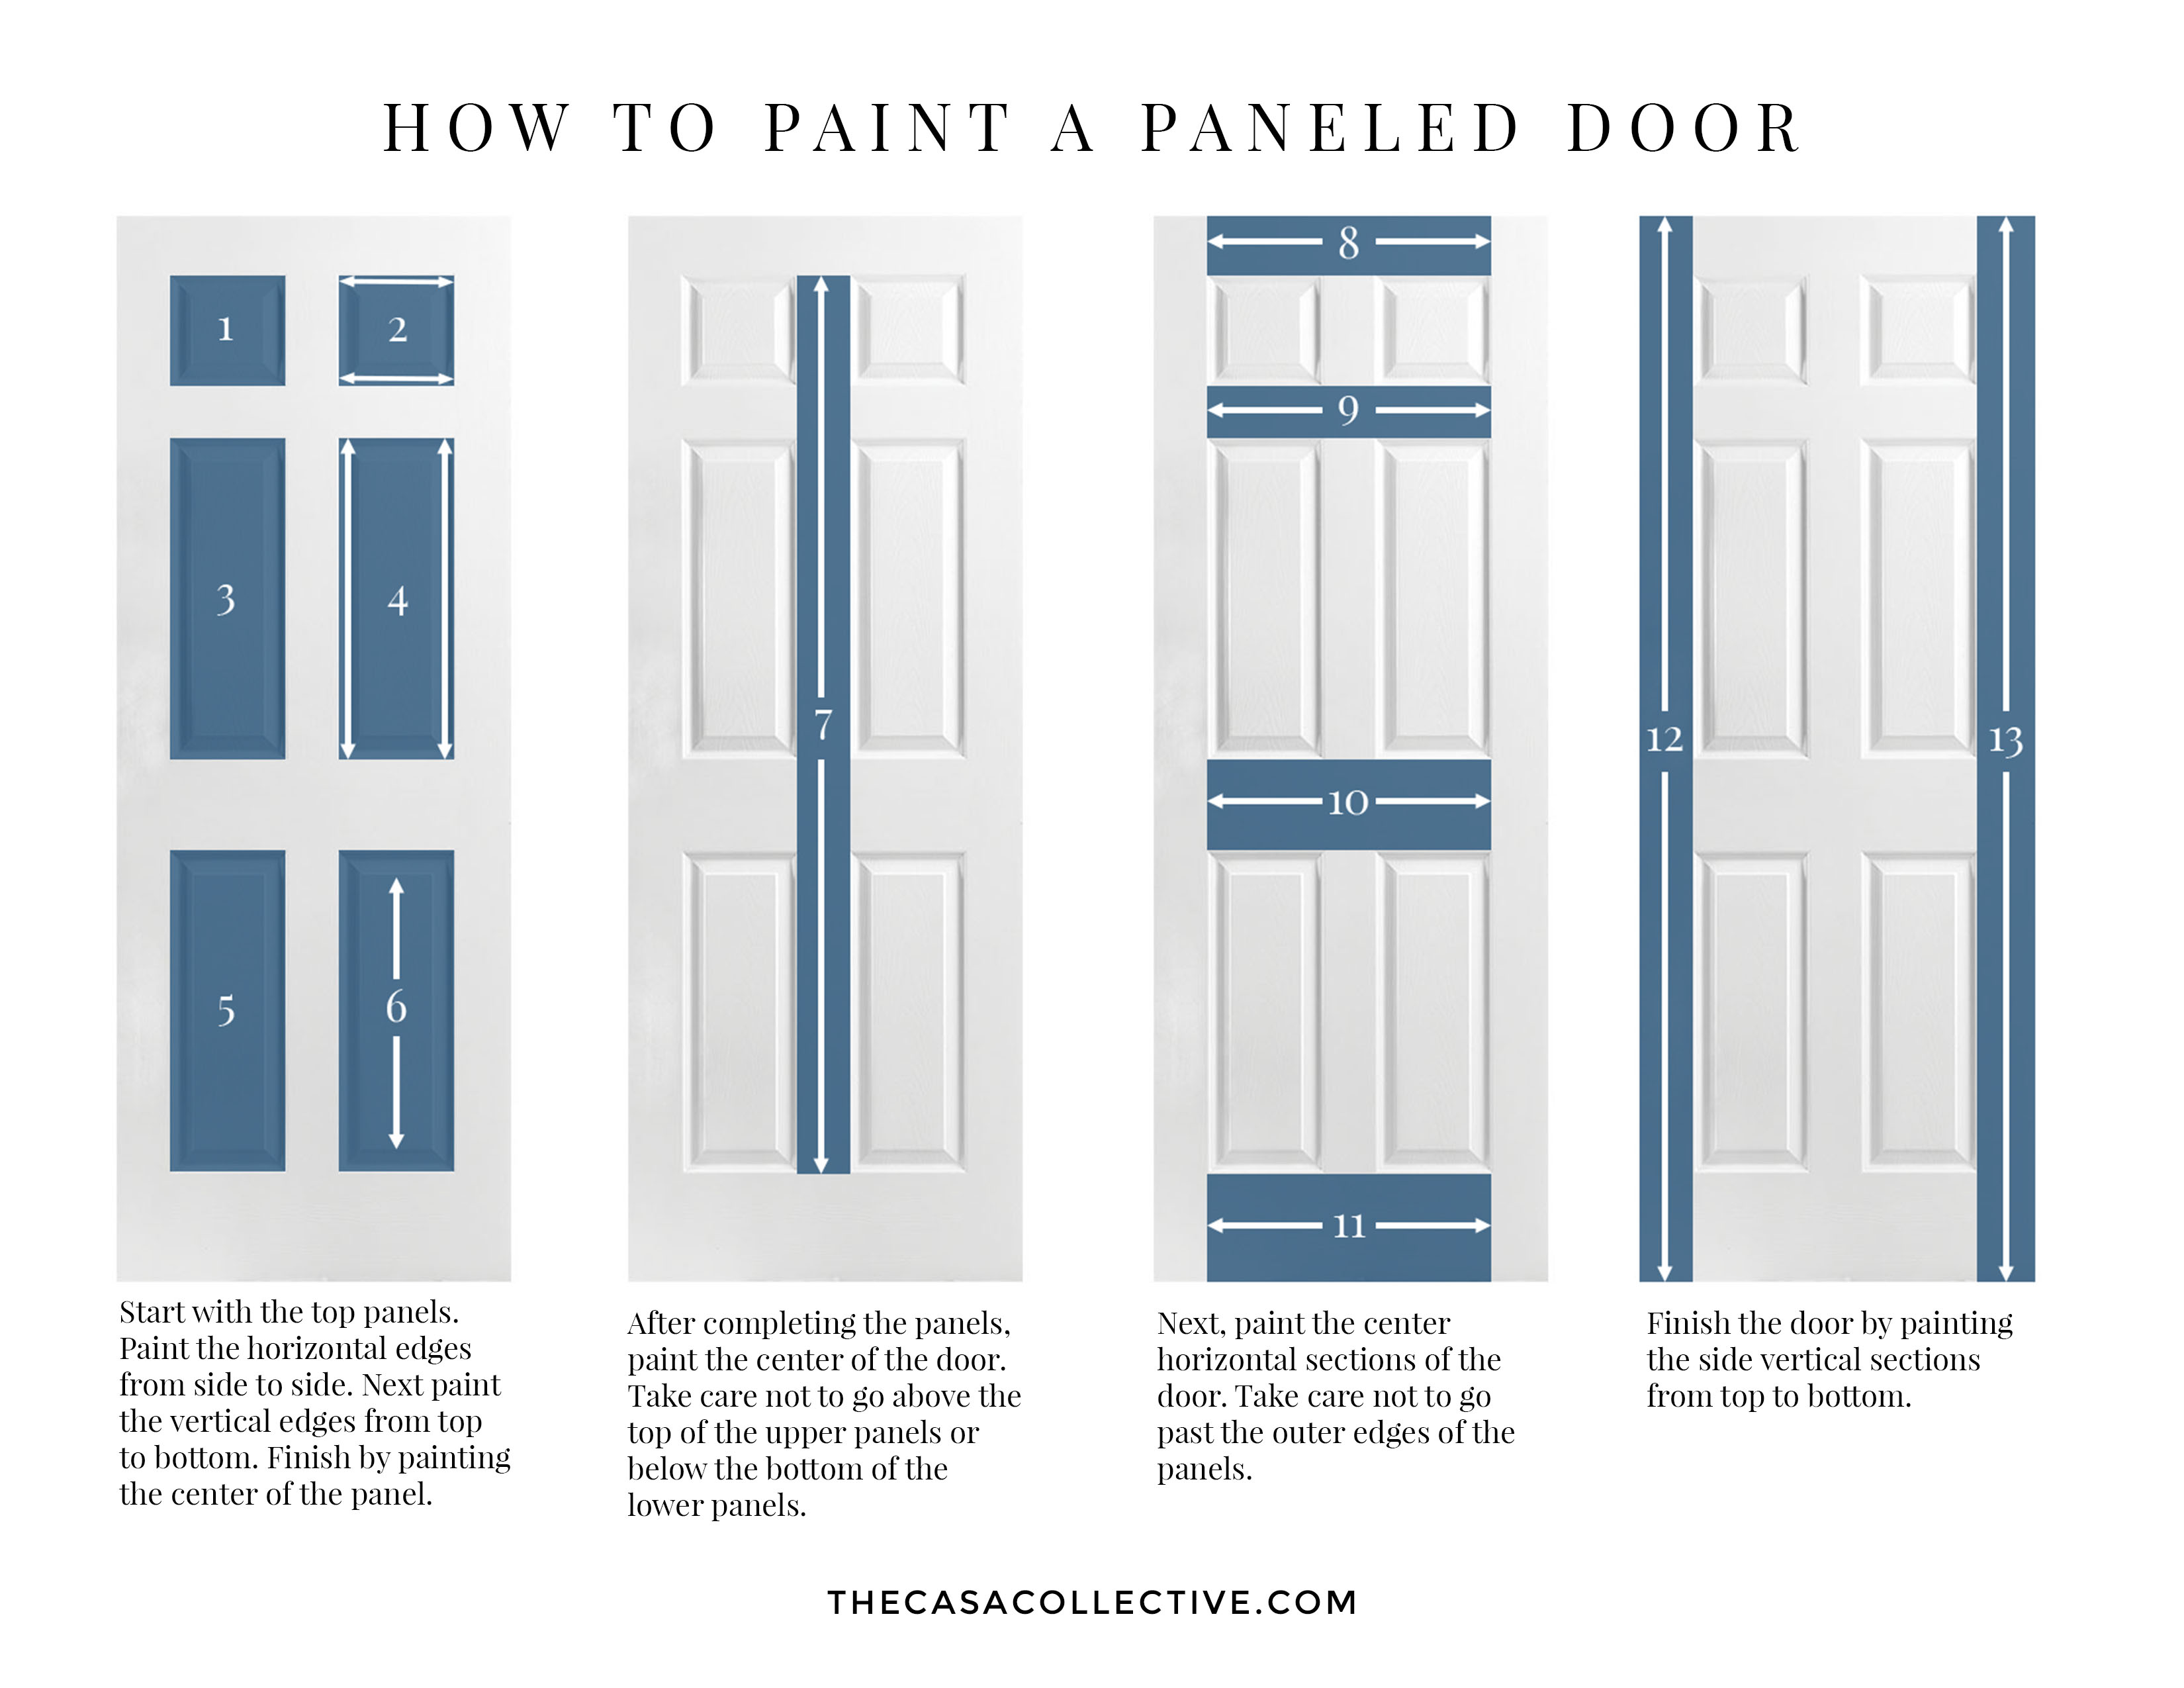 Wondering whether or not your interior doors should match the trim? An interior decorator answers that question and offers inspiration for to make it work. | TheCasaCollective.com | #interiordoorsandtrim #paintinginteriordoors #paintingtrim #choosingcolor